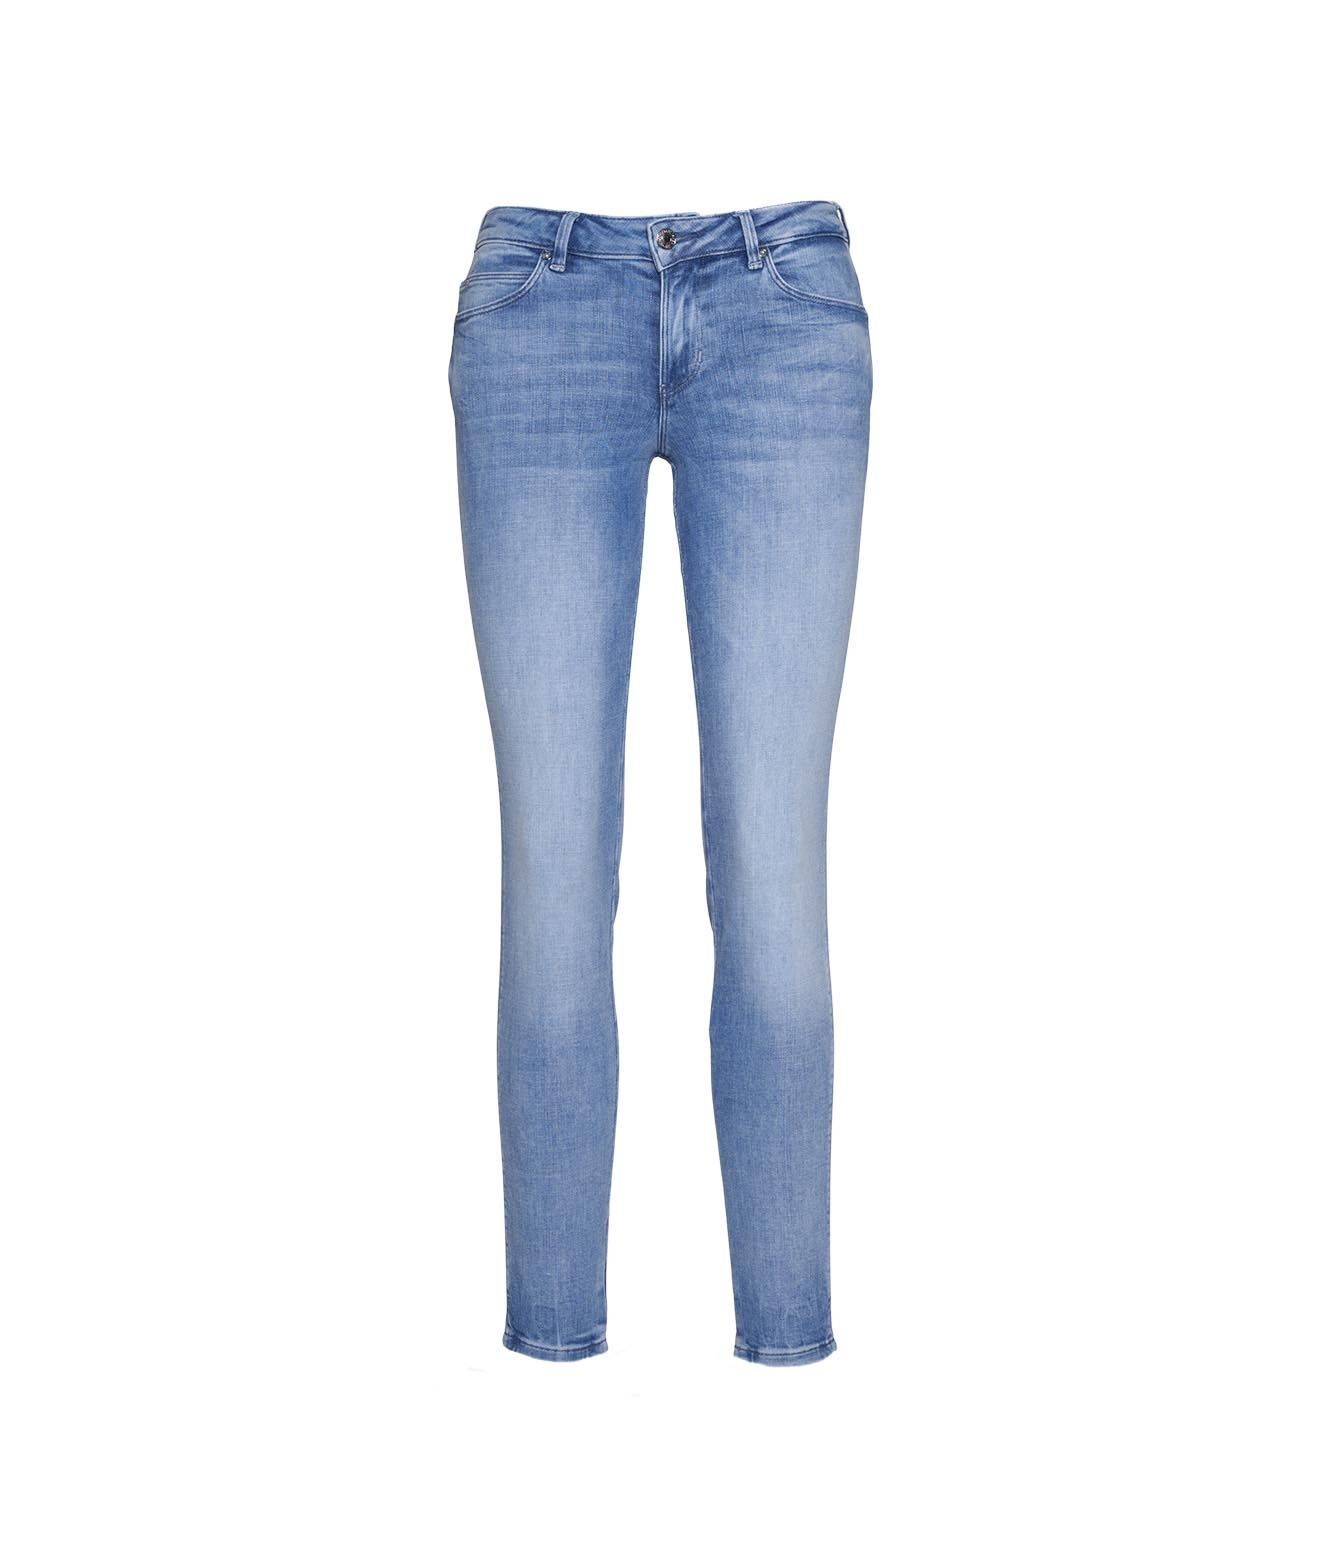 Guess Jeans GUESS WOMEN'S W1GAJ2D3ZT711POIP BLUE OTHER MATERIALS JEANS